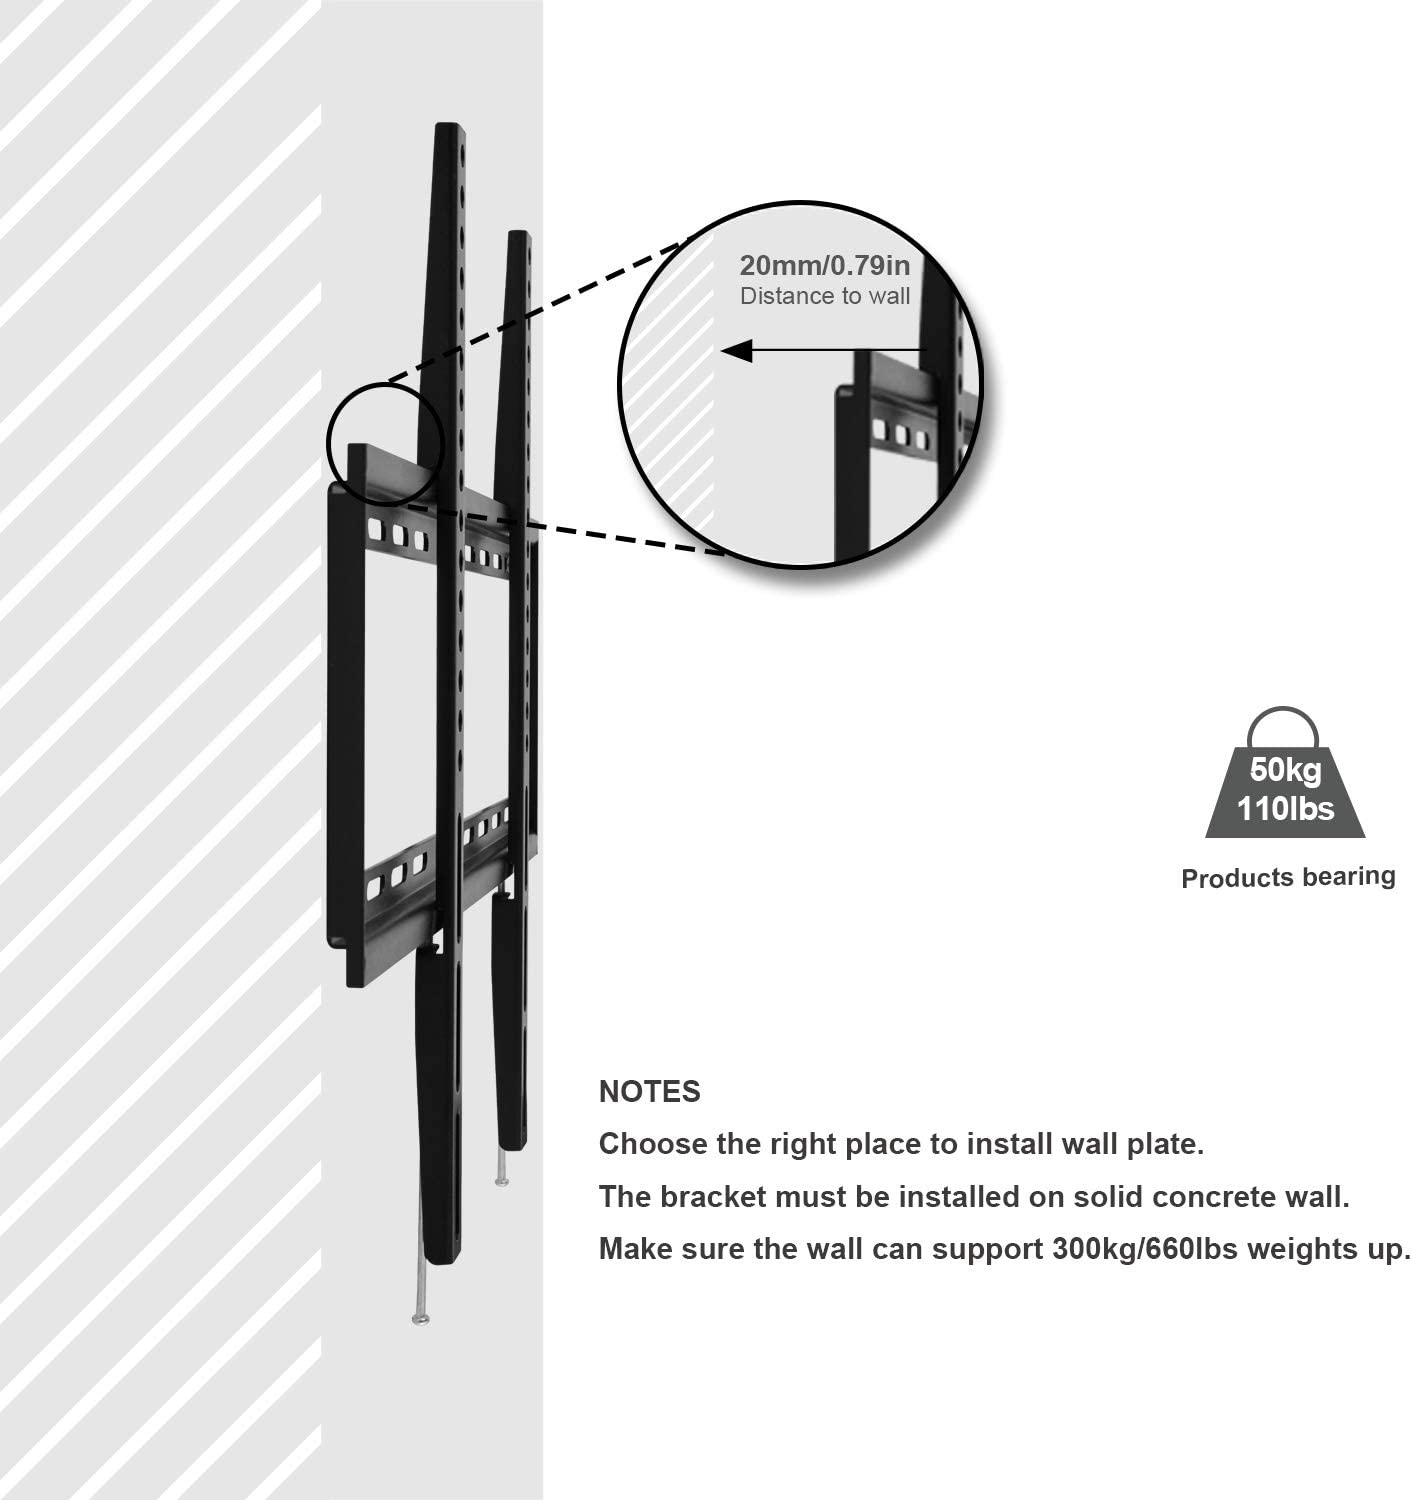 TV Mount with MAX VESA 600x400mm Loading Capacity up to 132 LBS RENTLIV Tilting TV Wall Mount Bracket for Most 32-70 Inches TV fits for 16 18 24 Wood Studs